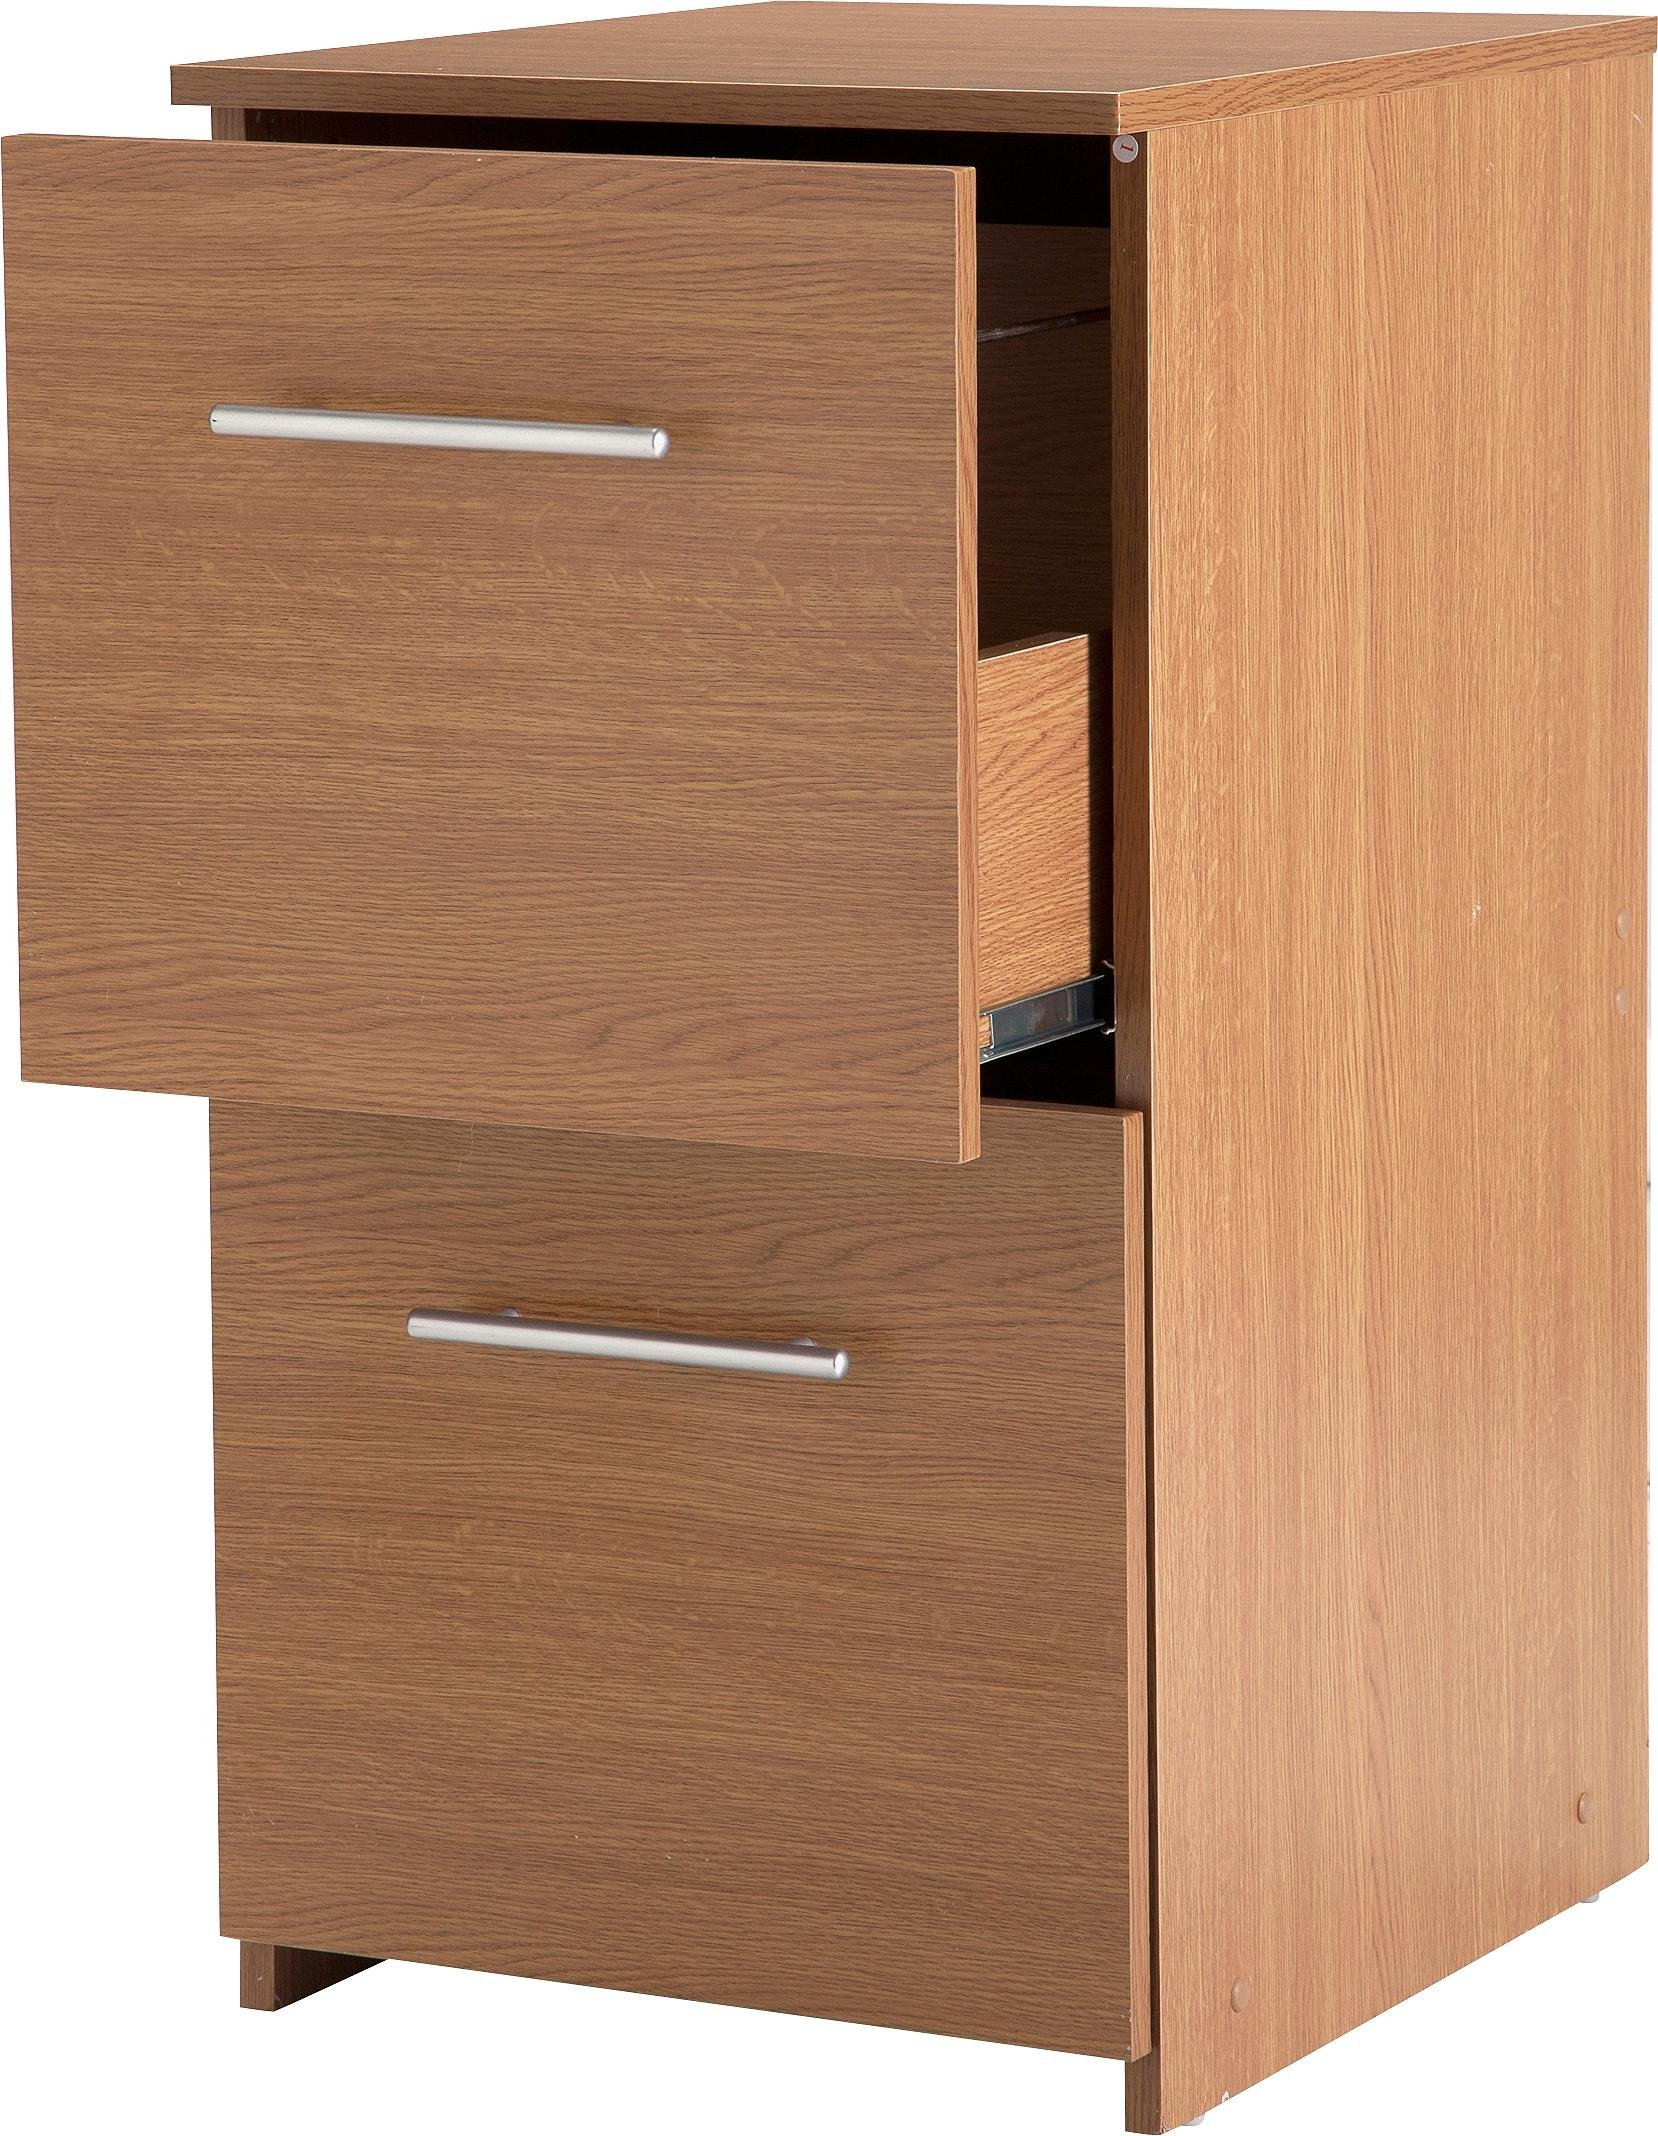 2 drawer filing cabinet oak effect review for How to increase cabinet depth